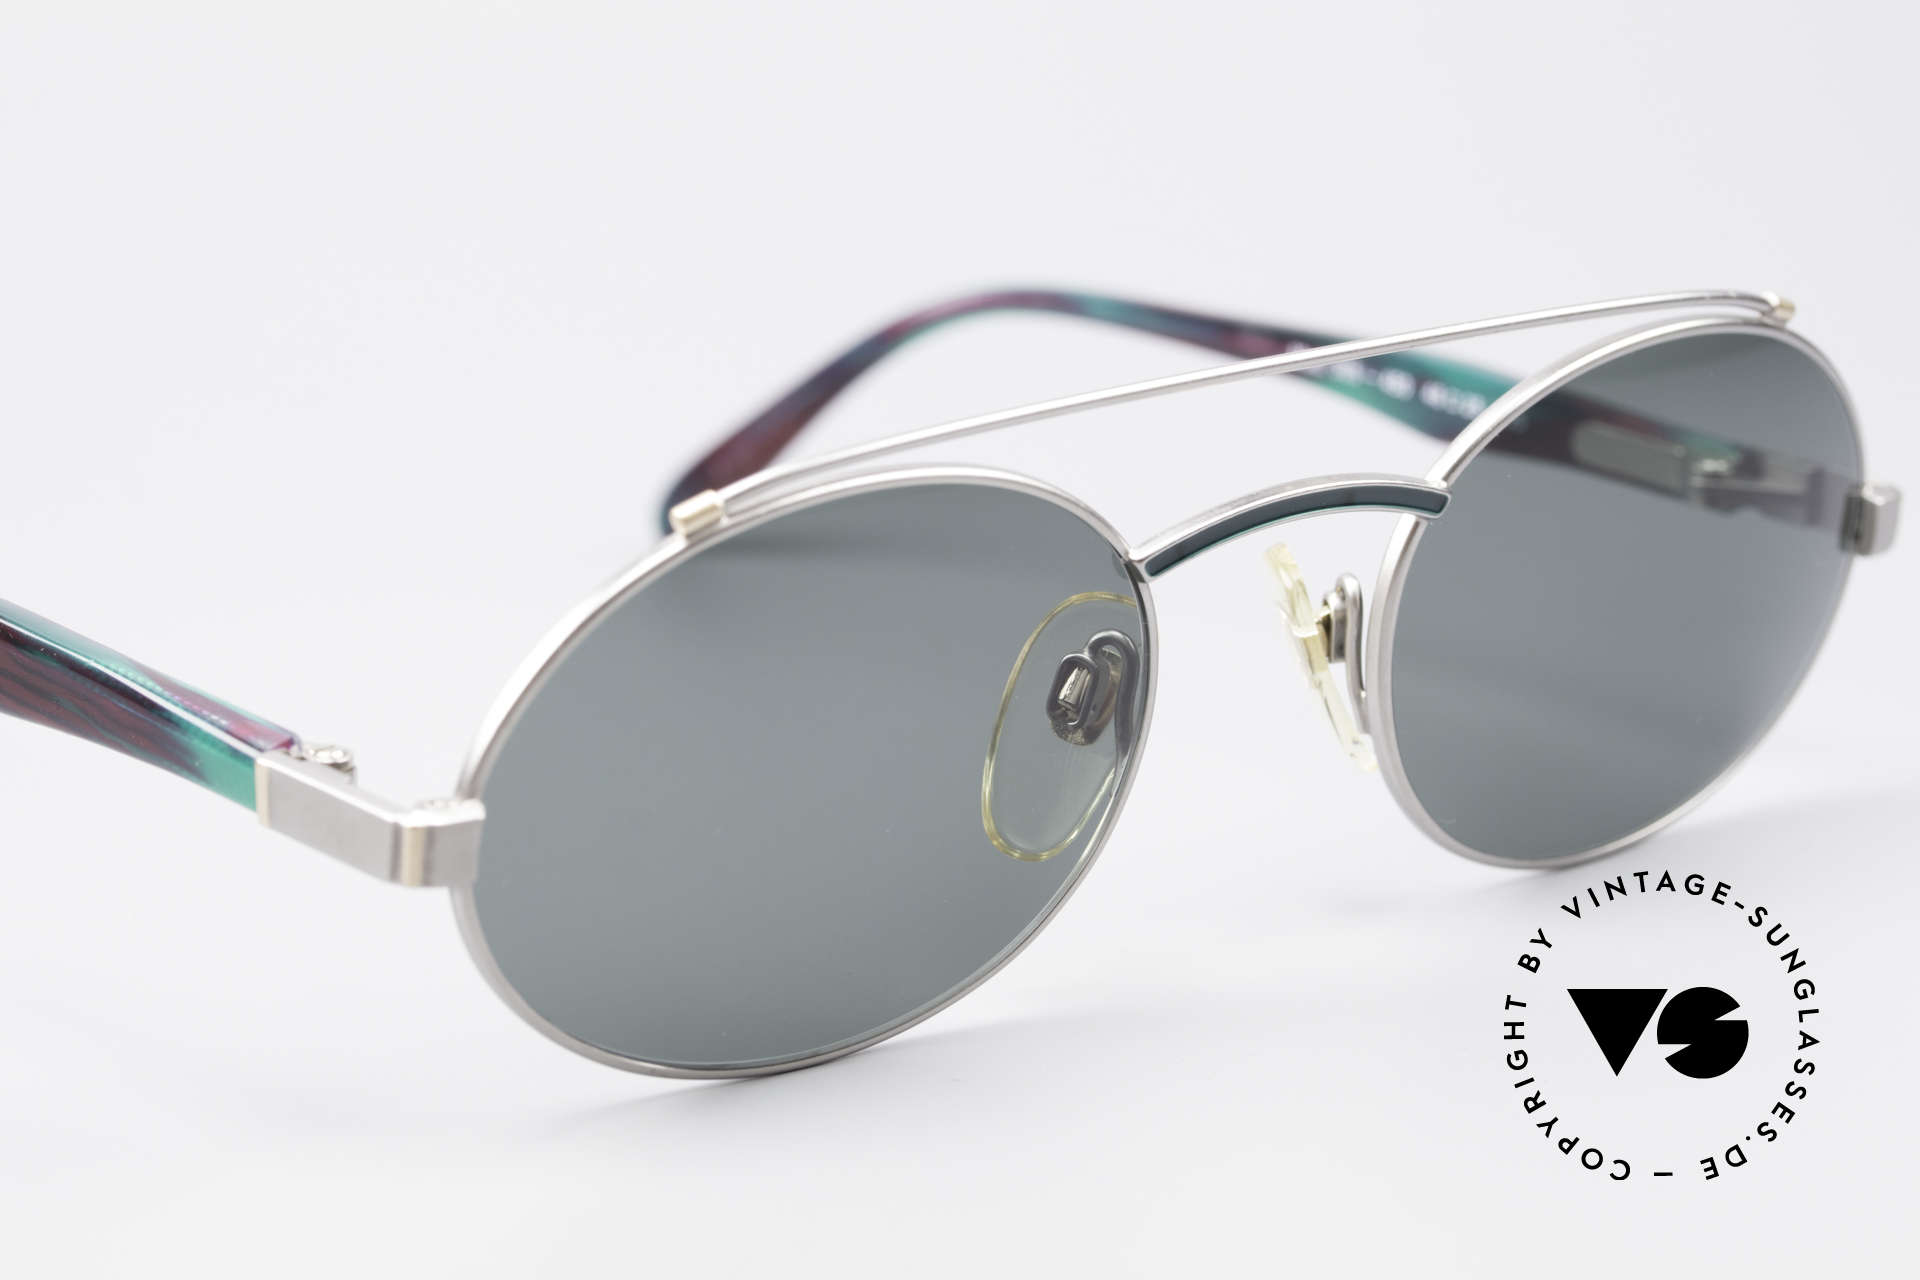 Davidoff 305 Oval Vintage Men's Frame, new old stock (like all our vintage Davidoff sunglasses), Made for Men